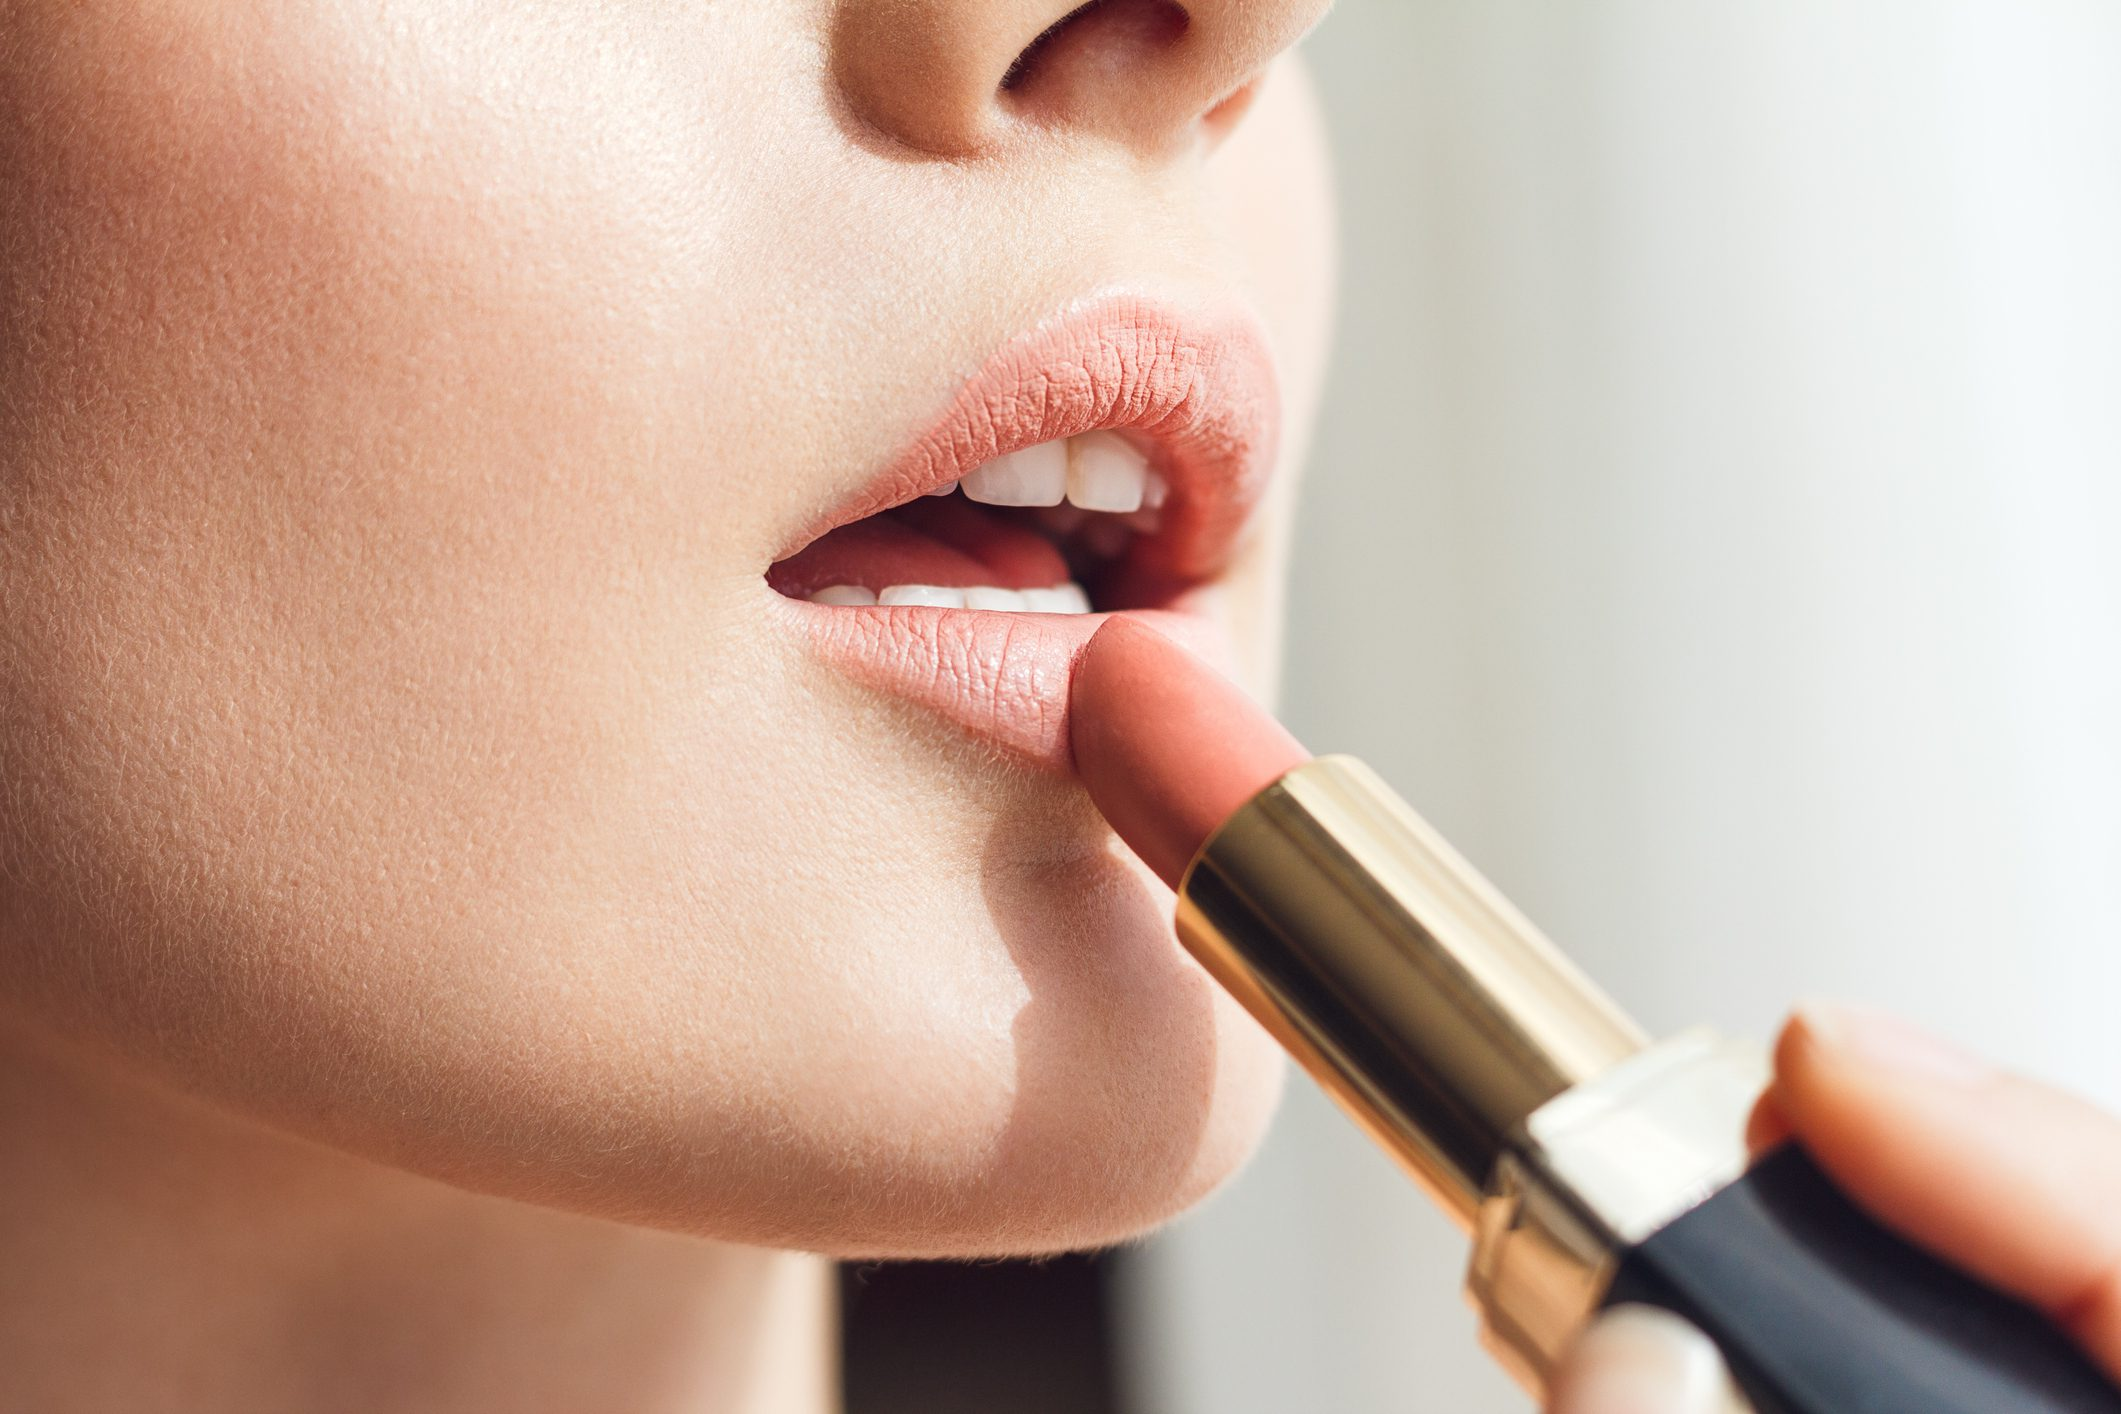 Close up detail of young woman applying lipstick.